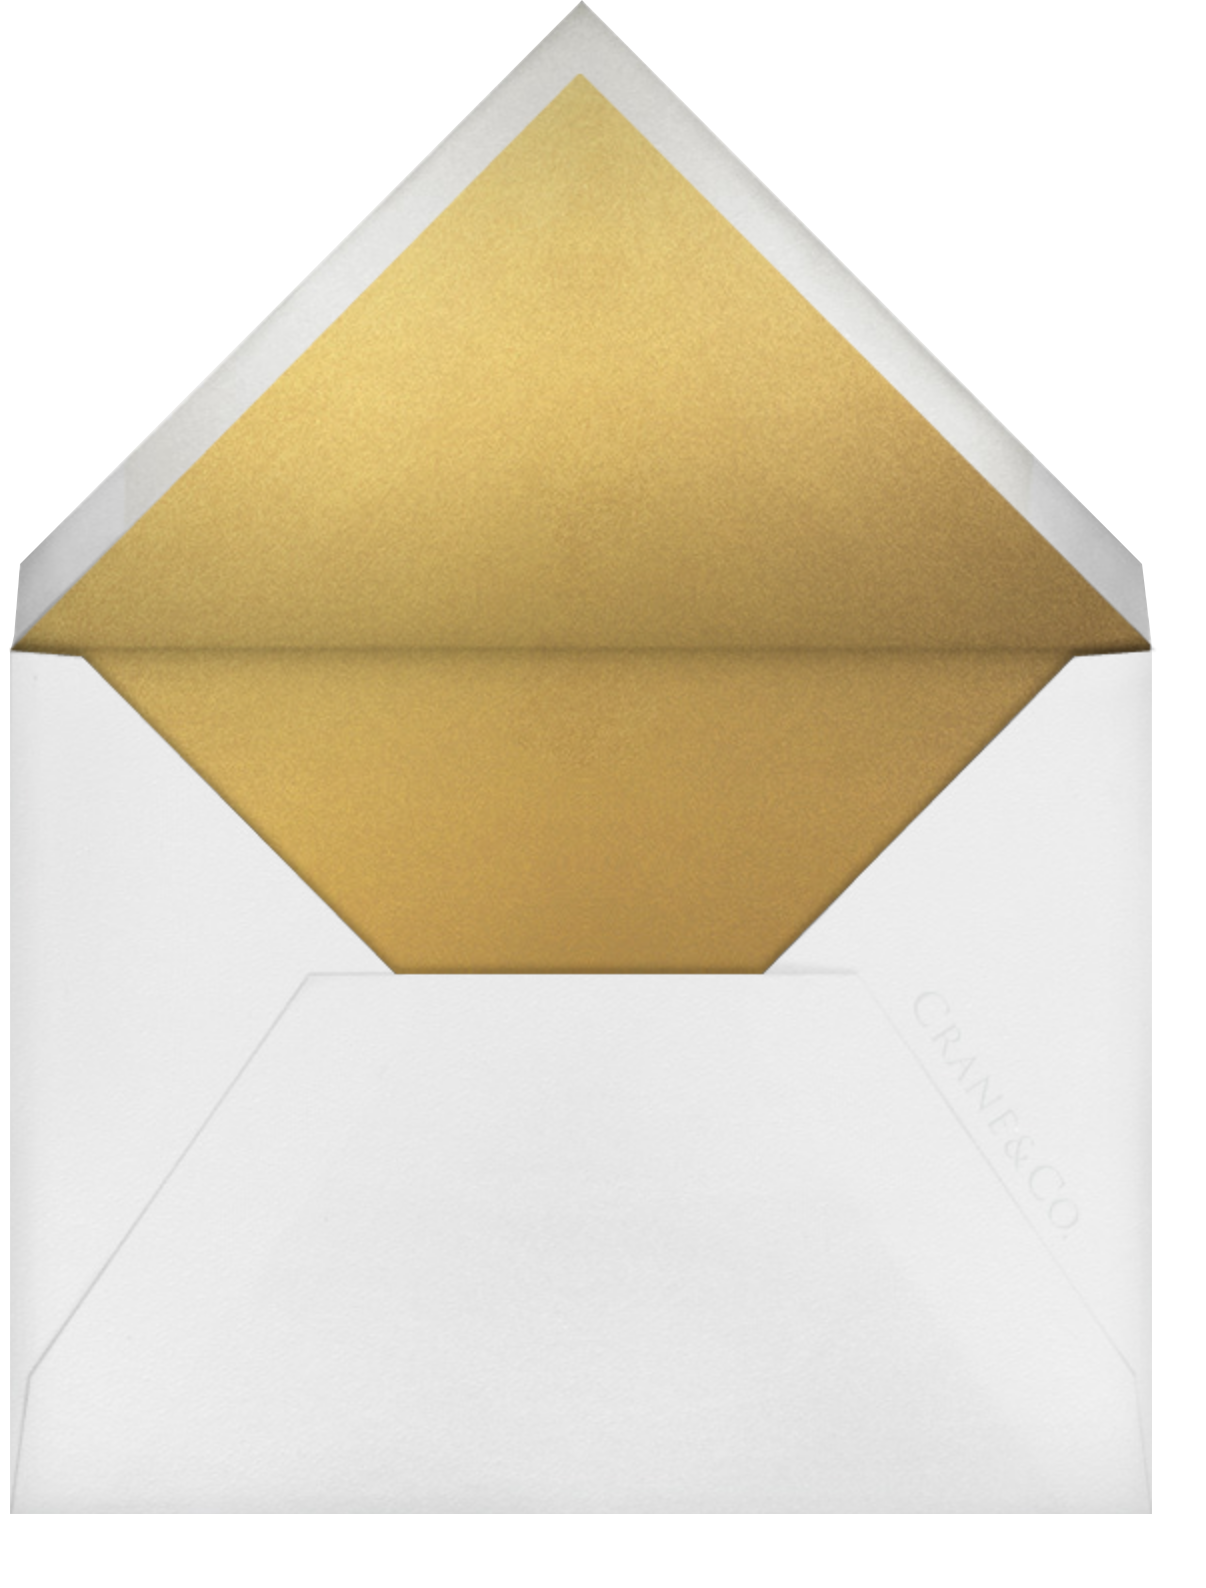 Editorial I - Gold - Paperless Post - All - envelope back